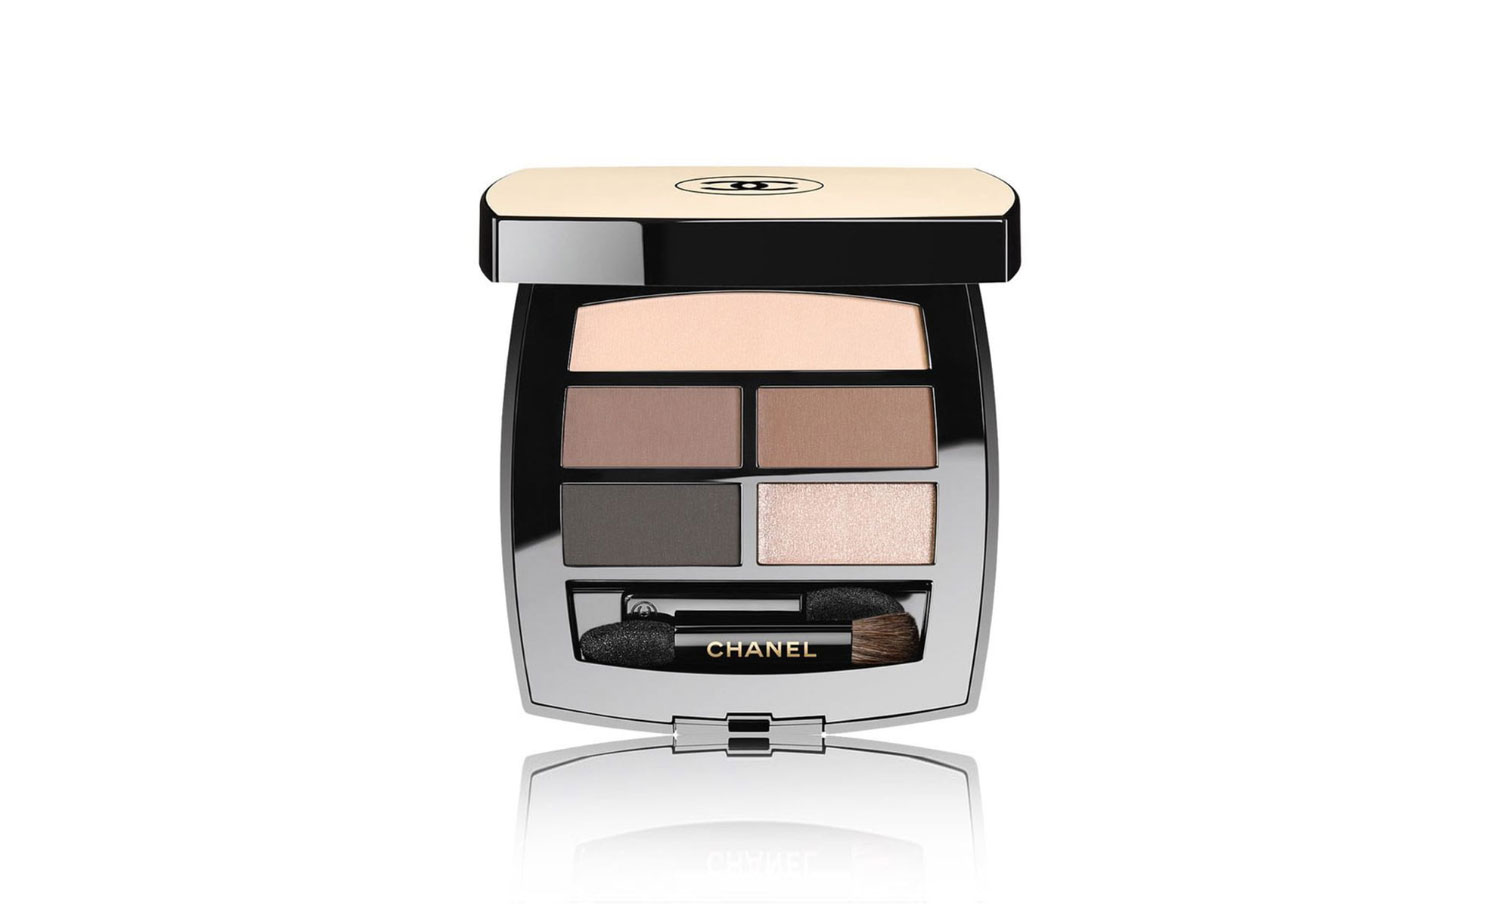 Chanel Les Beiges Natural Eyeshadow Collection